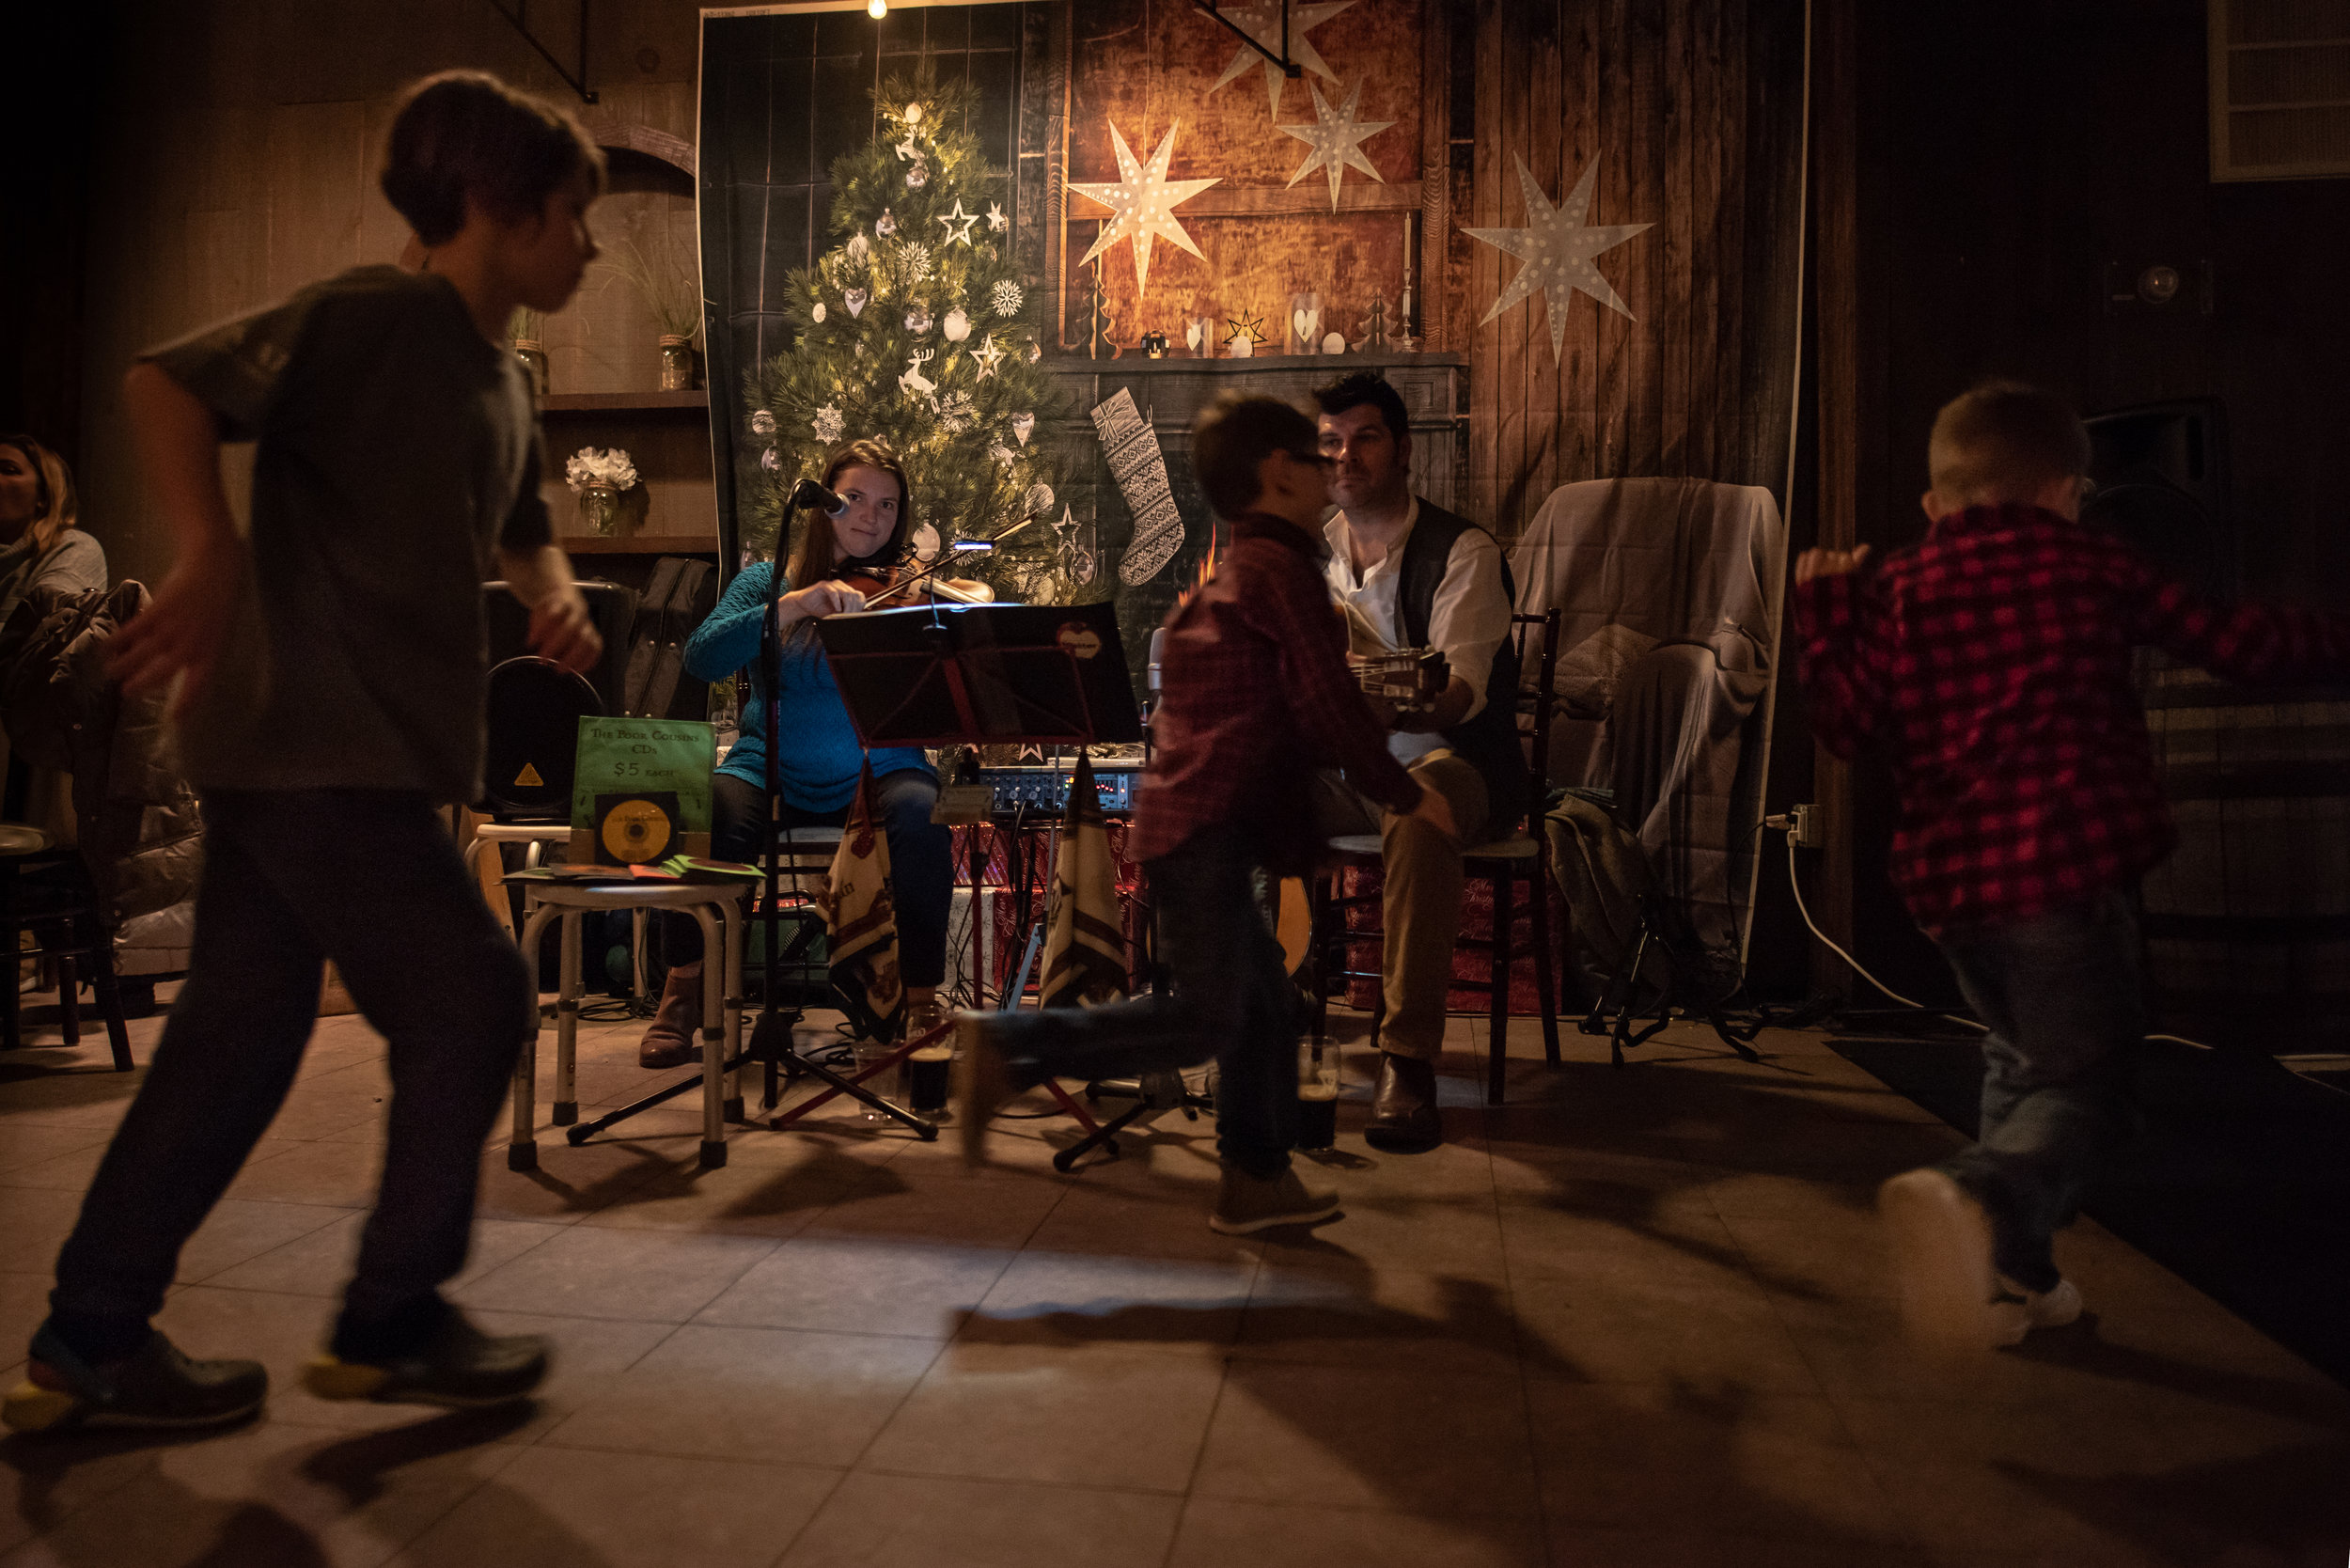 The Poor Cousins round out the holiday season with a performance at an Irish themed holiday dinner in Far Rockaway, New York.